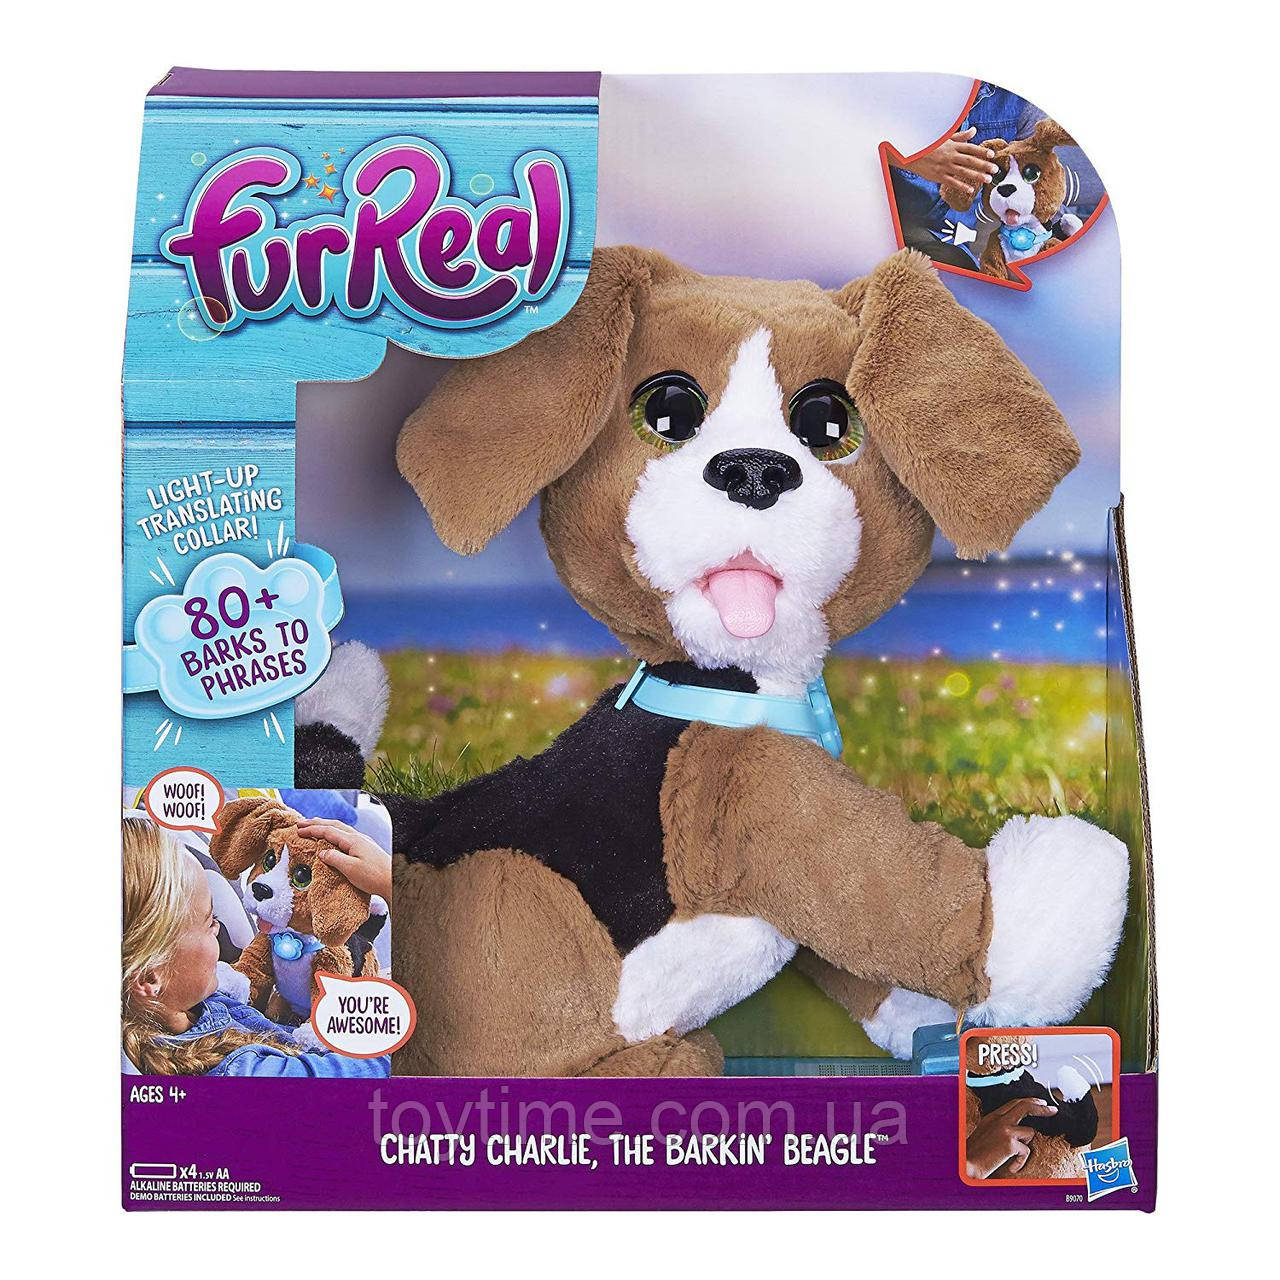 РУССКОЯЗЫЧНЫЙ Говорящий щенок Чарли FurReal Friends / FurReal Chatty Charlie the Barkin' Beagle